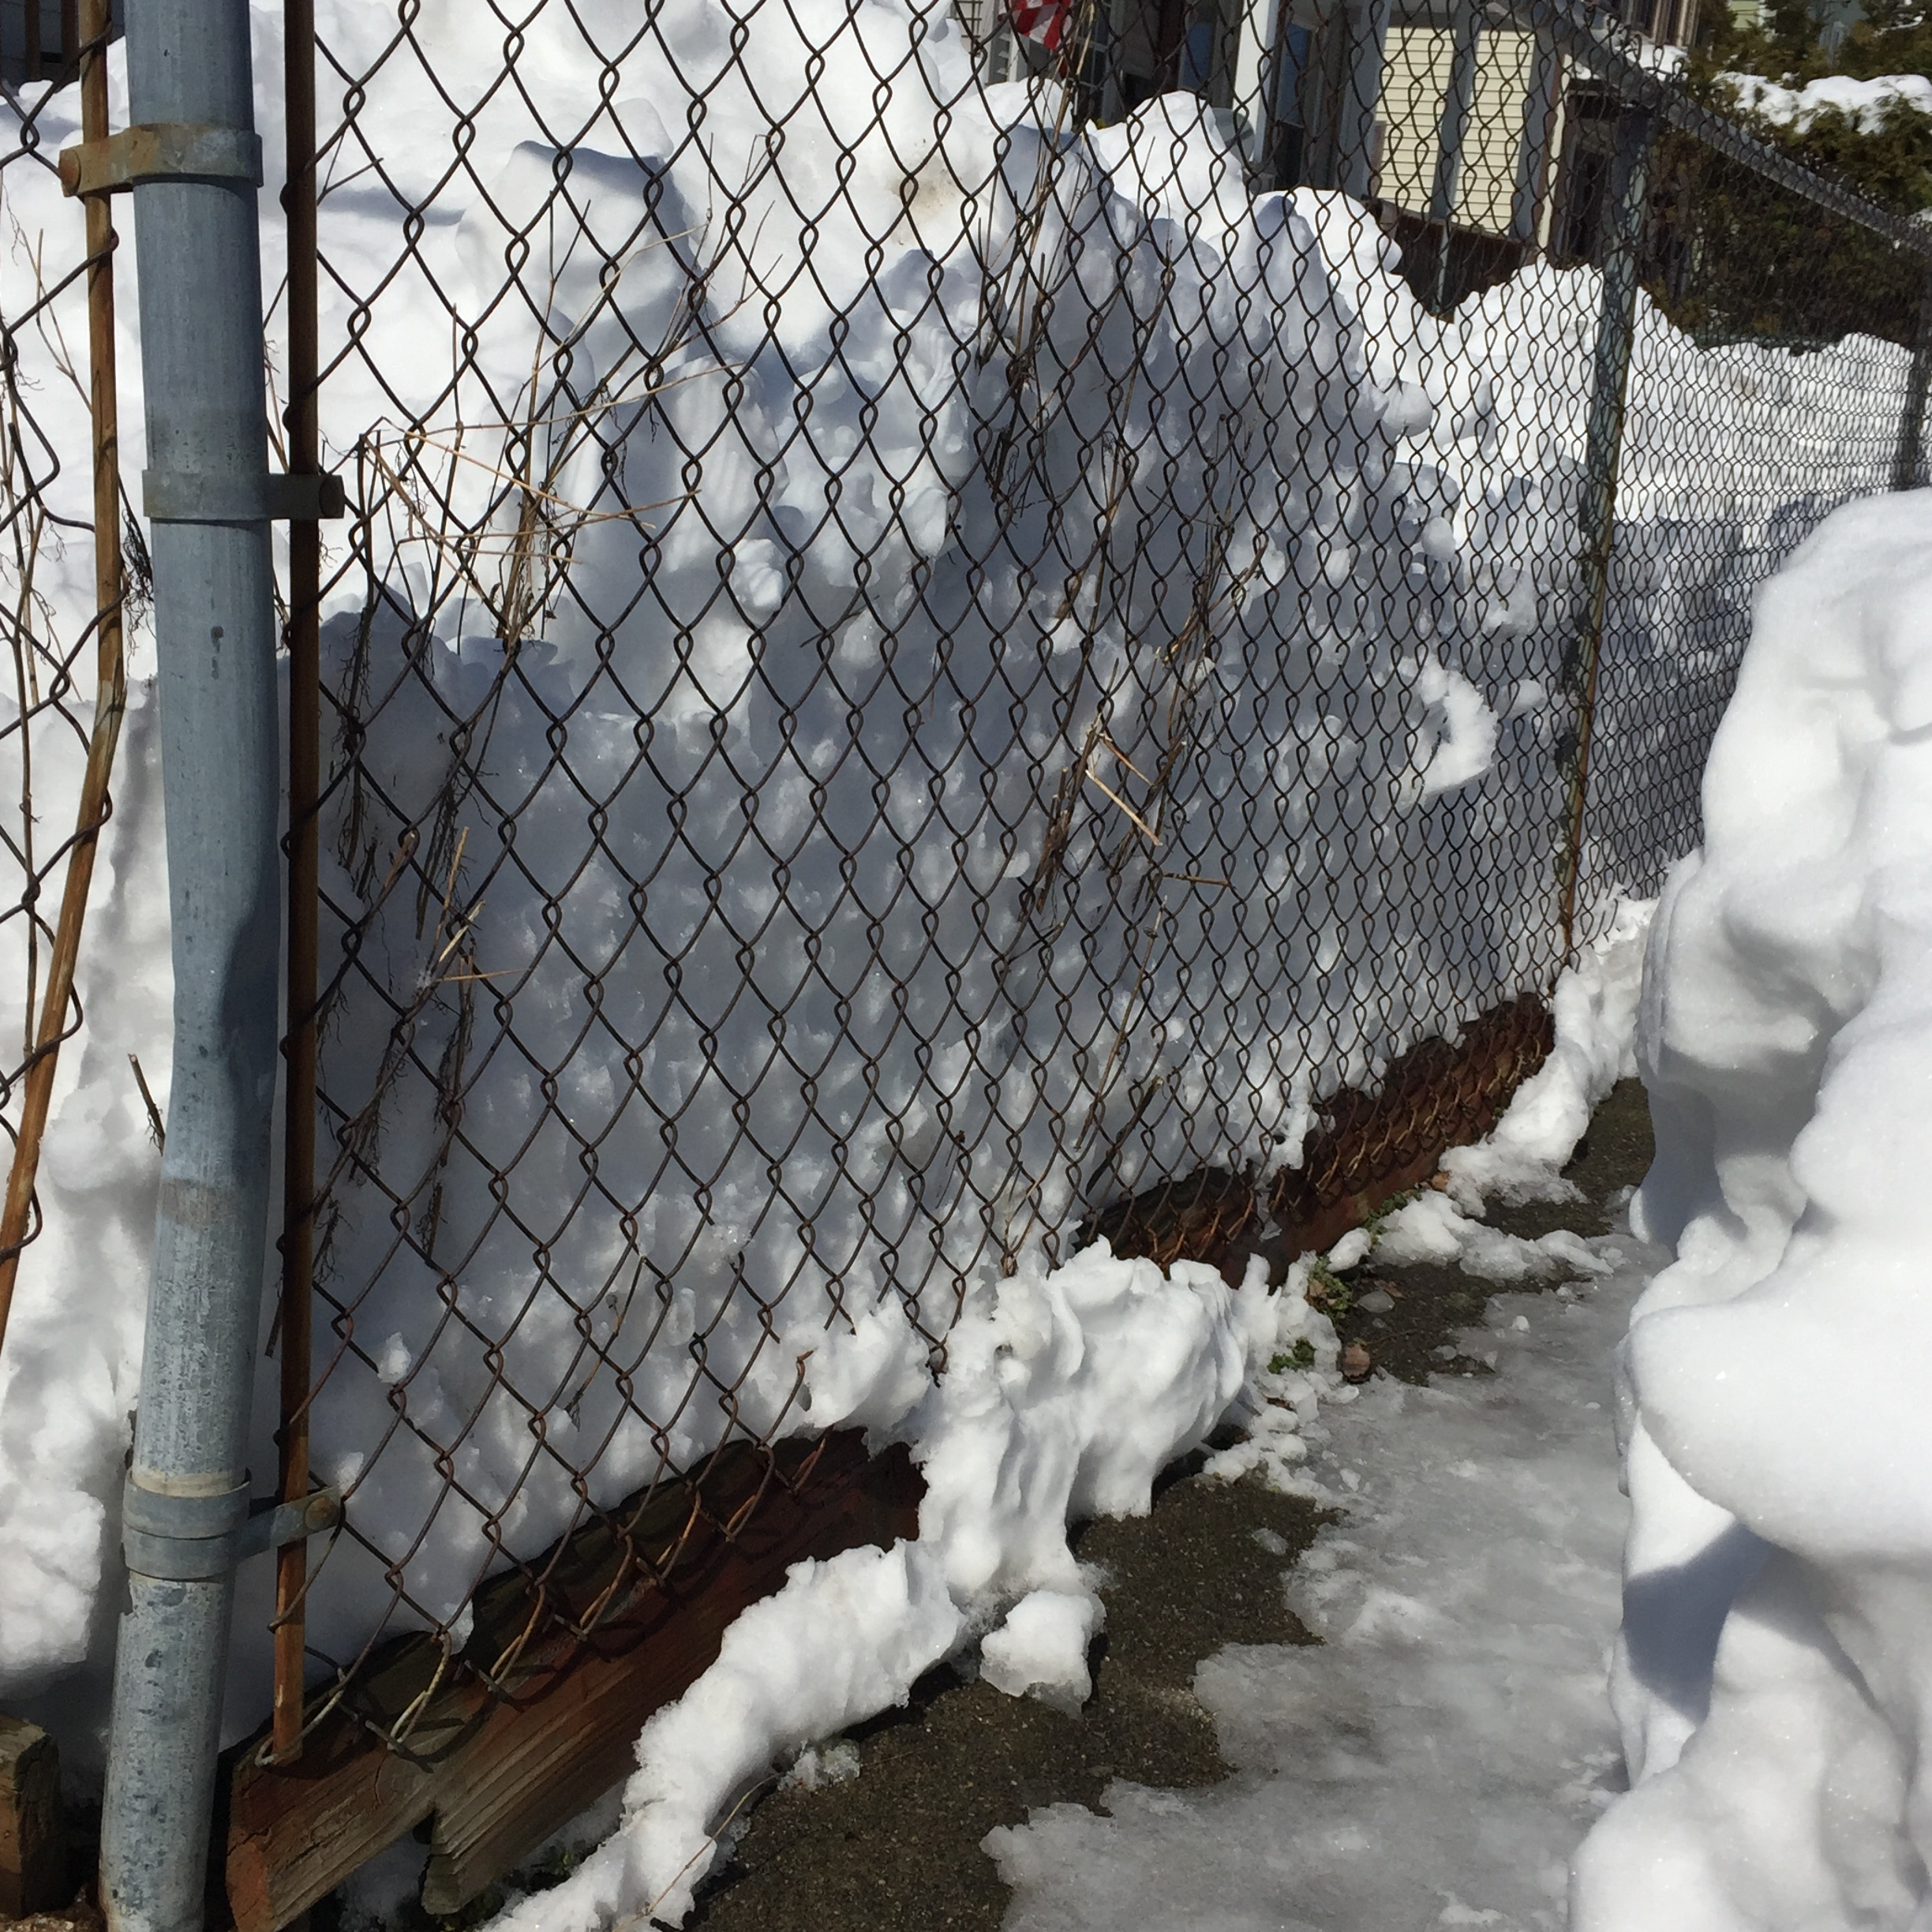 Watch for buckling fences pushed by unbalanced yards full of snow.